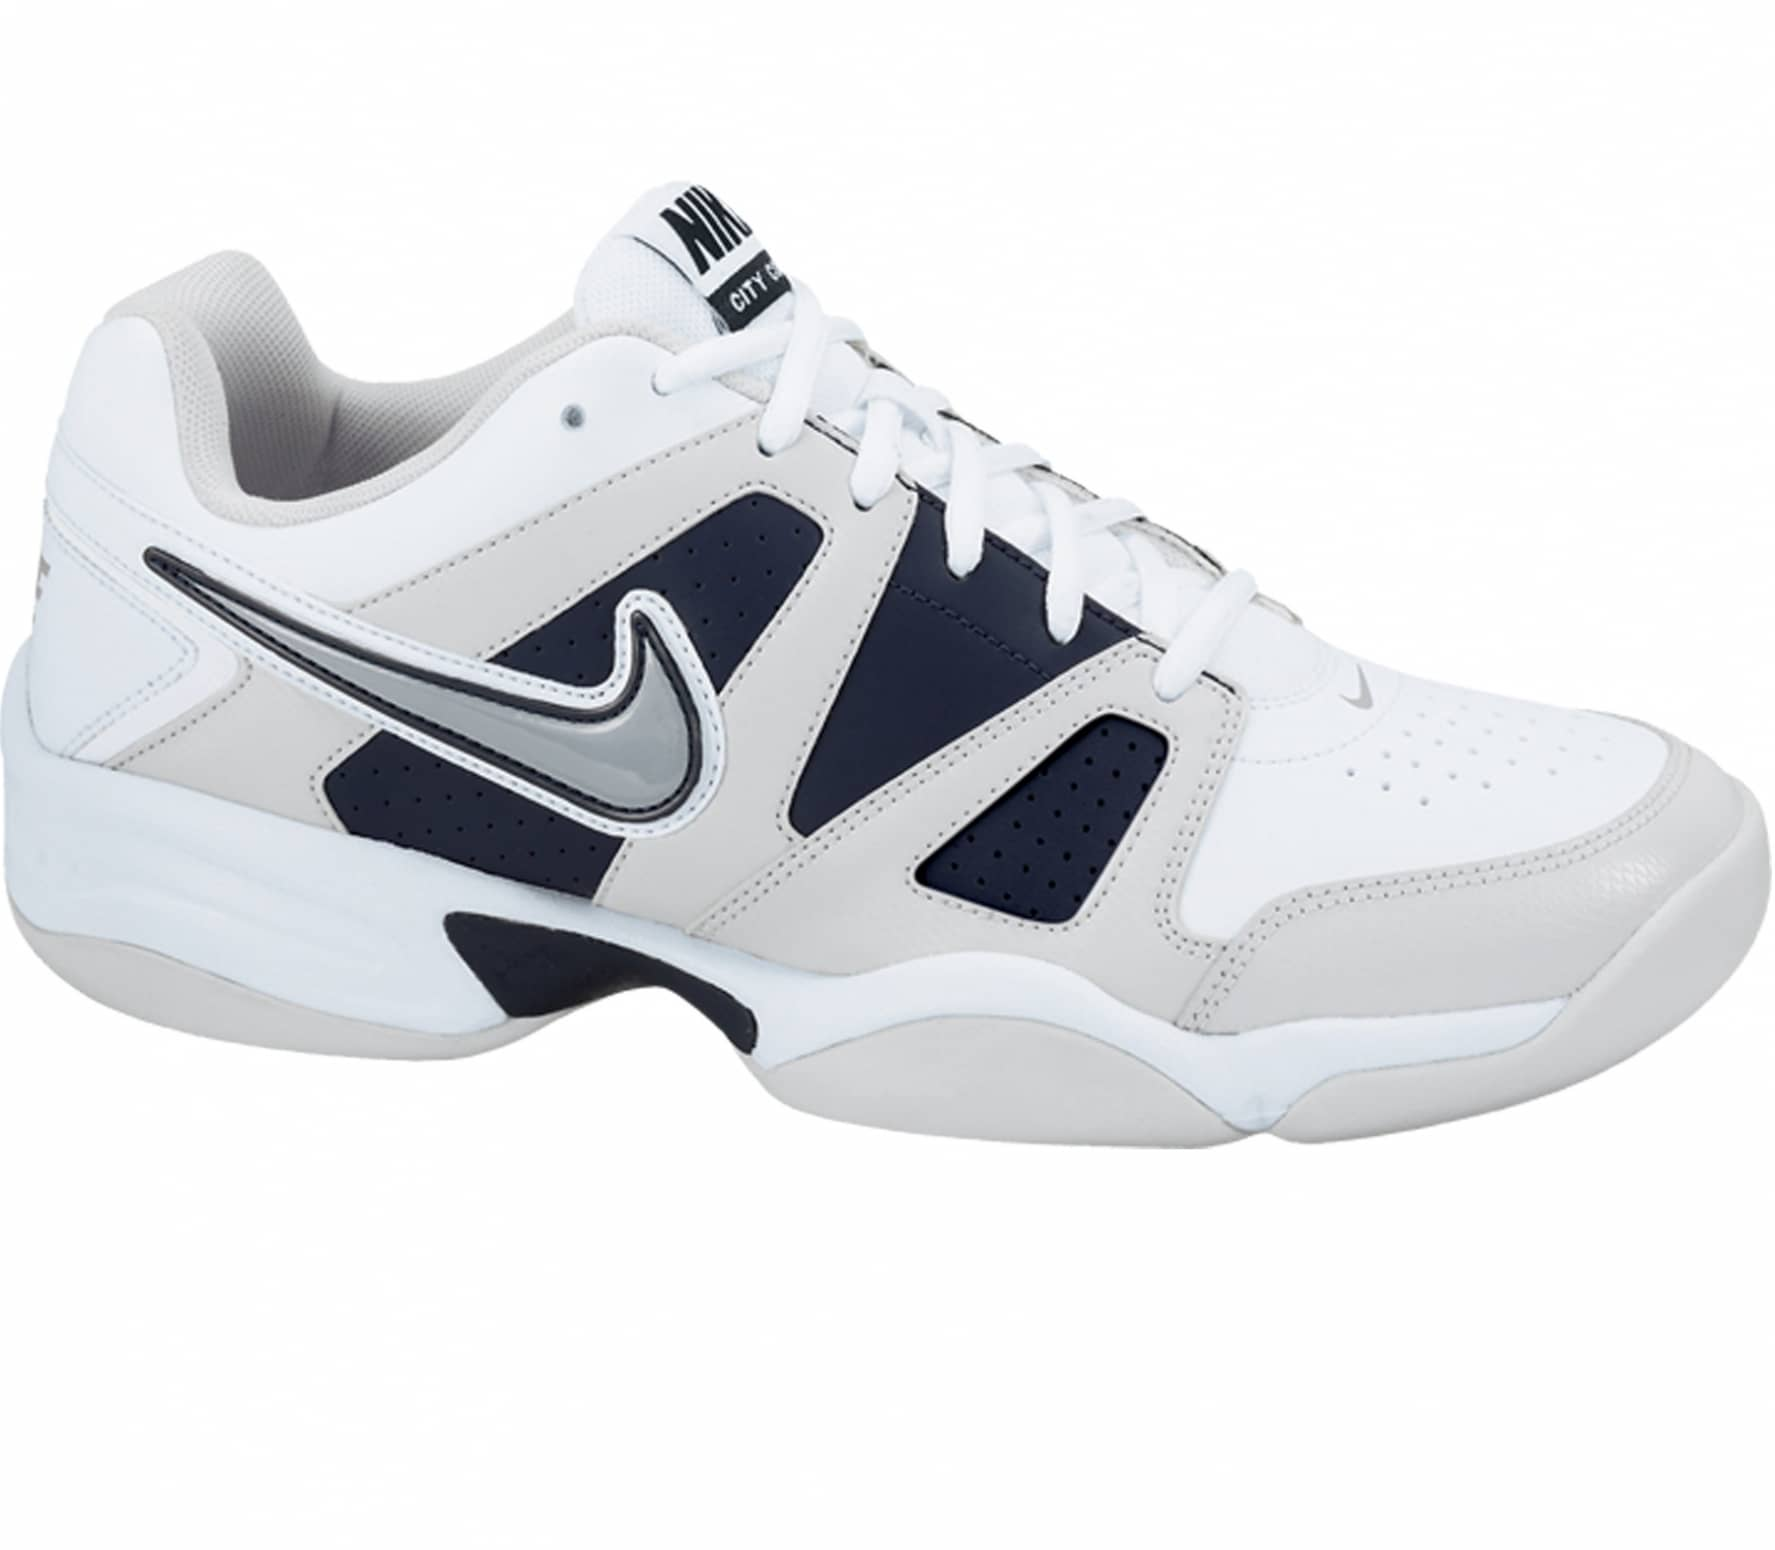 huge discount 6e9b0 becf5 Nike - tennis shoes men s City Court VII Indoor - FA13